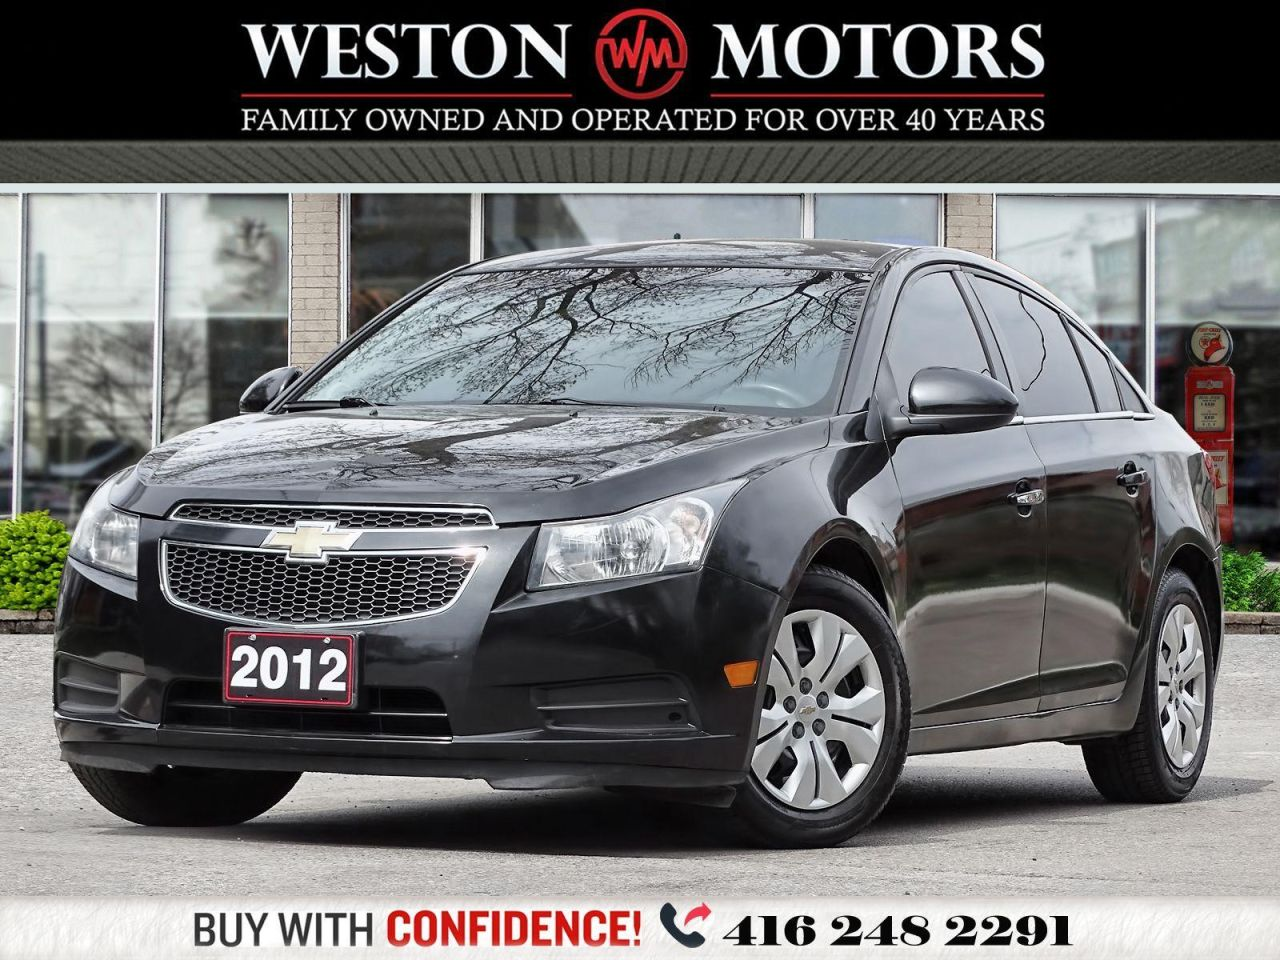 2012 Chevrolet Cruze RS*LT*1.4L*LOCAL TRADE*SOLD CERTIFIED!